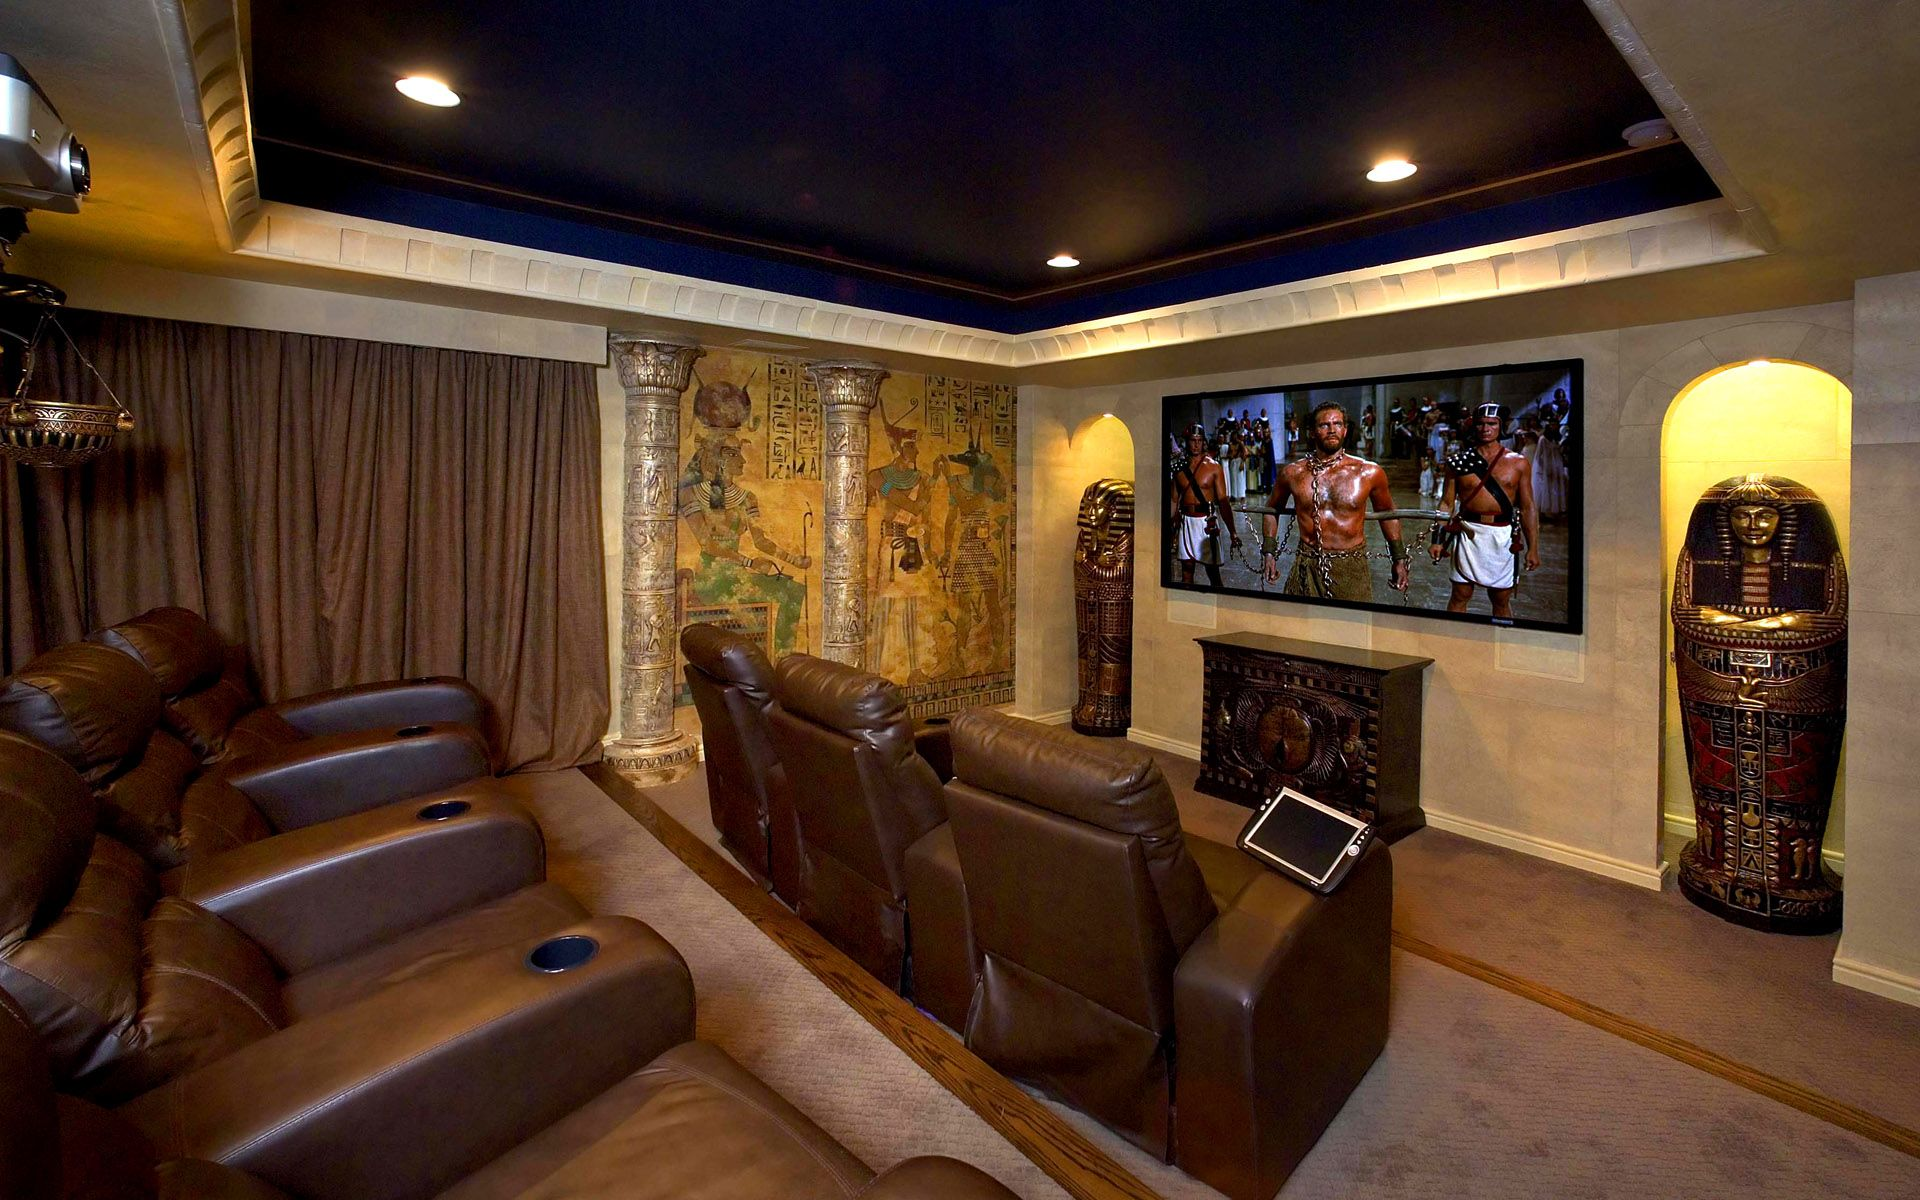 Amazing Hometheater Wallpaper Landscape Design Theater Wallpapers Images